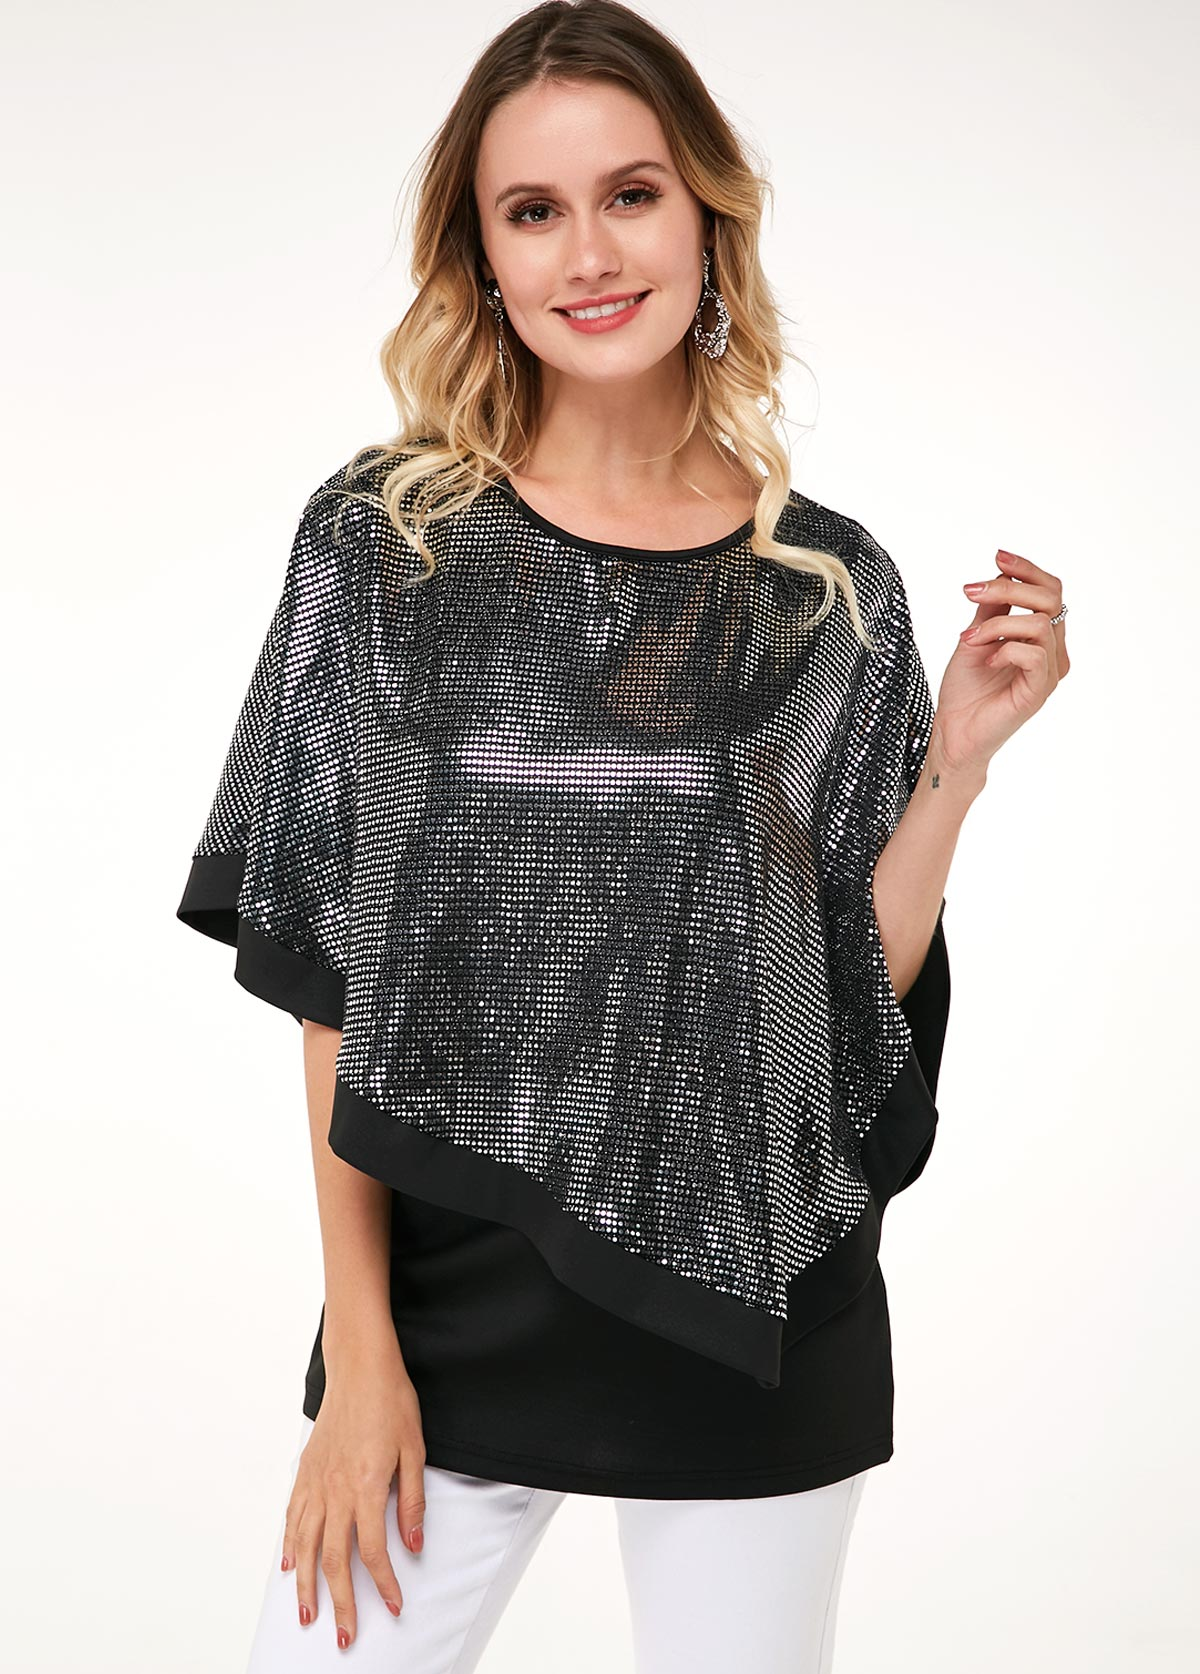 ROTITA Round Neck Black Tank Top and Sequin Cape T Shirt